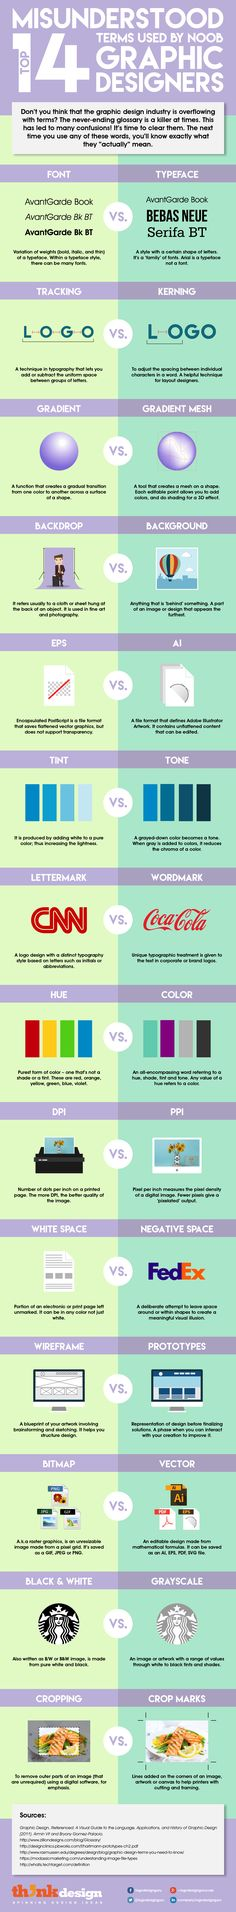 Top 14 Misunderstood Terms Used By Noob Graphic Designers! How many did you…